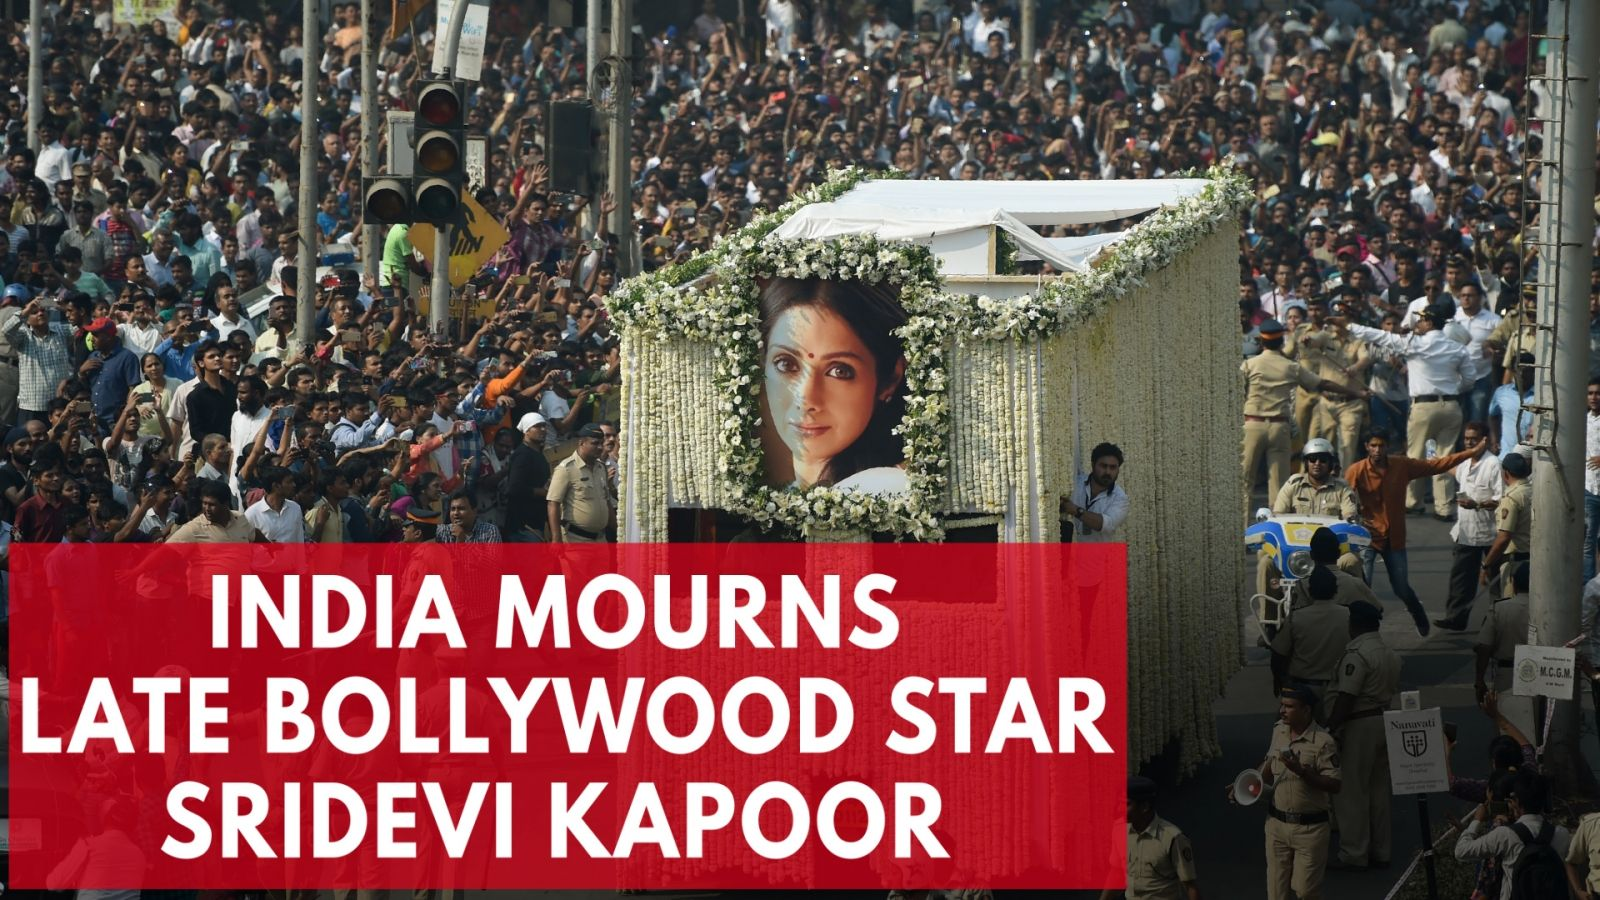 thousands-in-india-mourn-late-bollywood-star-sridevi-kapoor